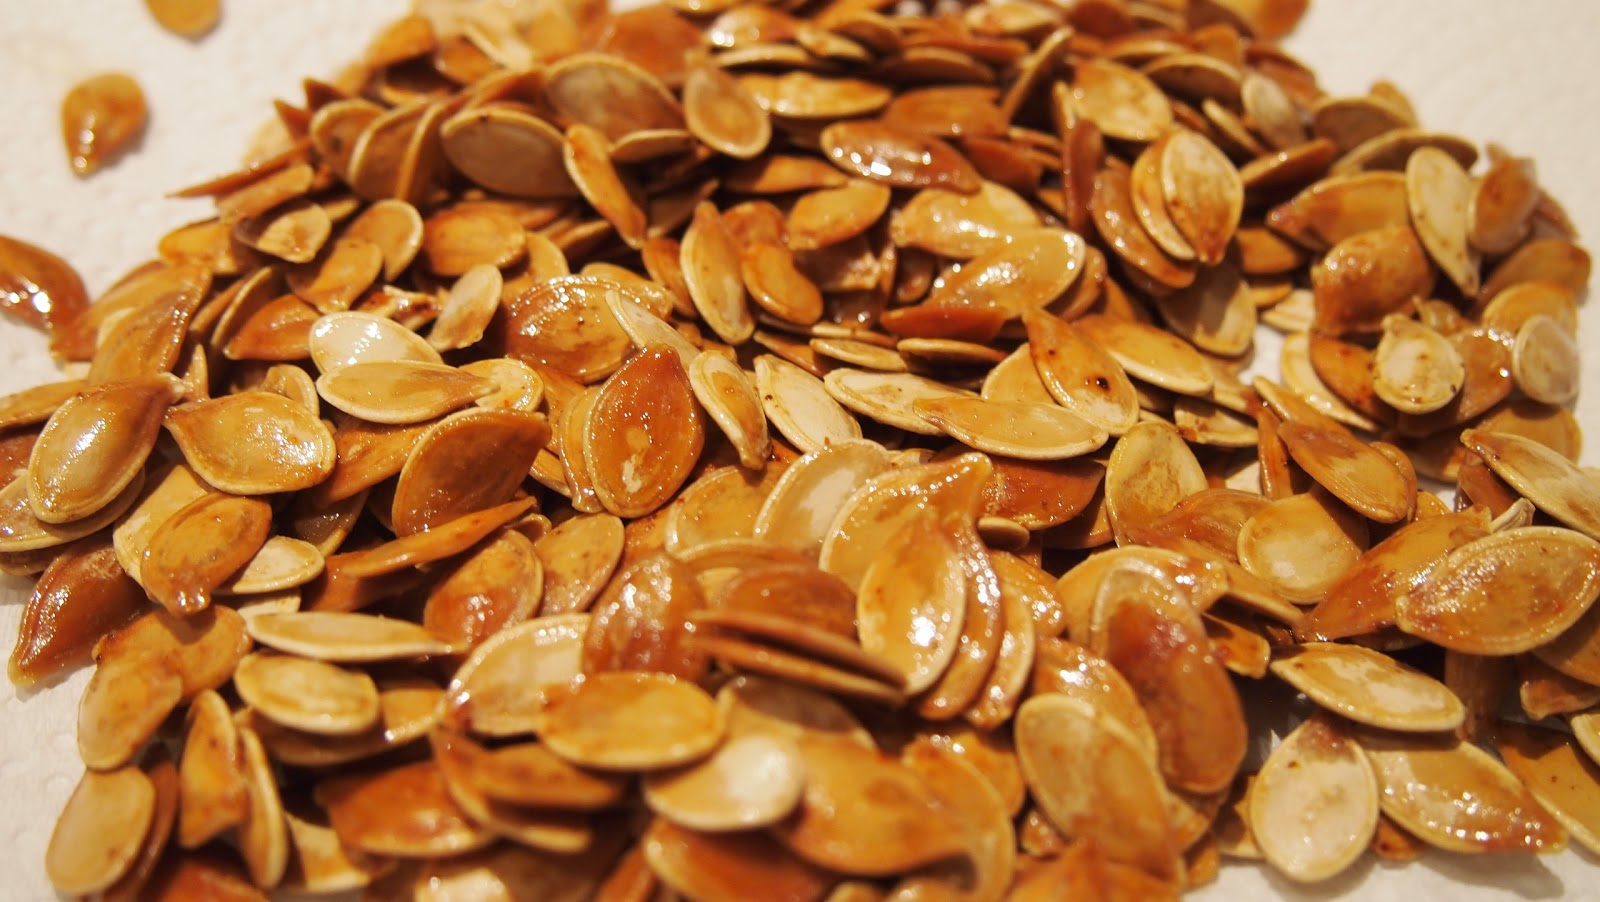 EpiCurious Generations: Roasted Pumpkin Seeds